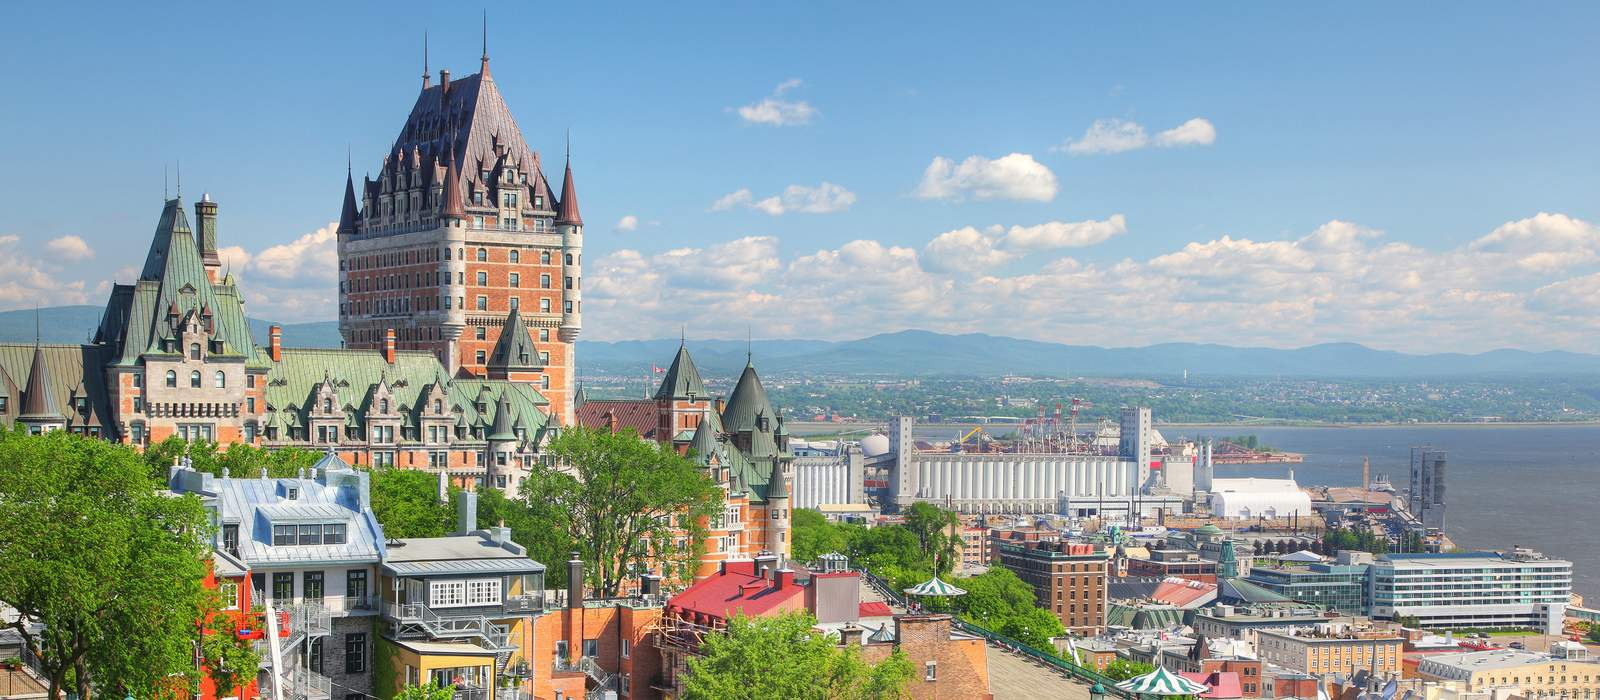 Chateau Frontenac, Old Quebec City